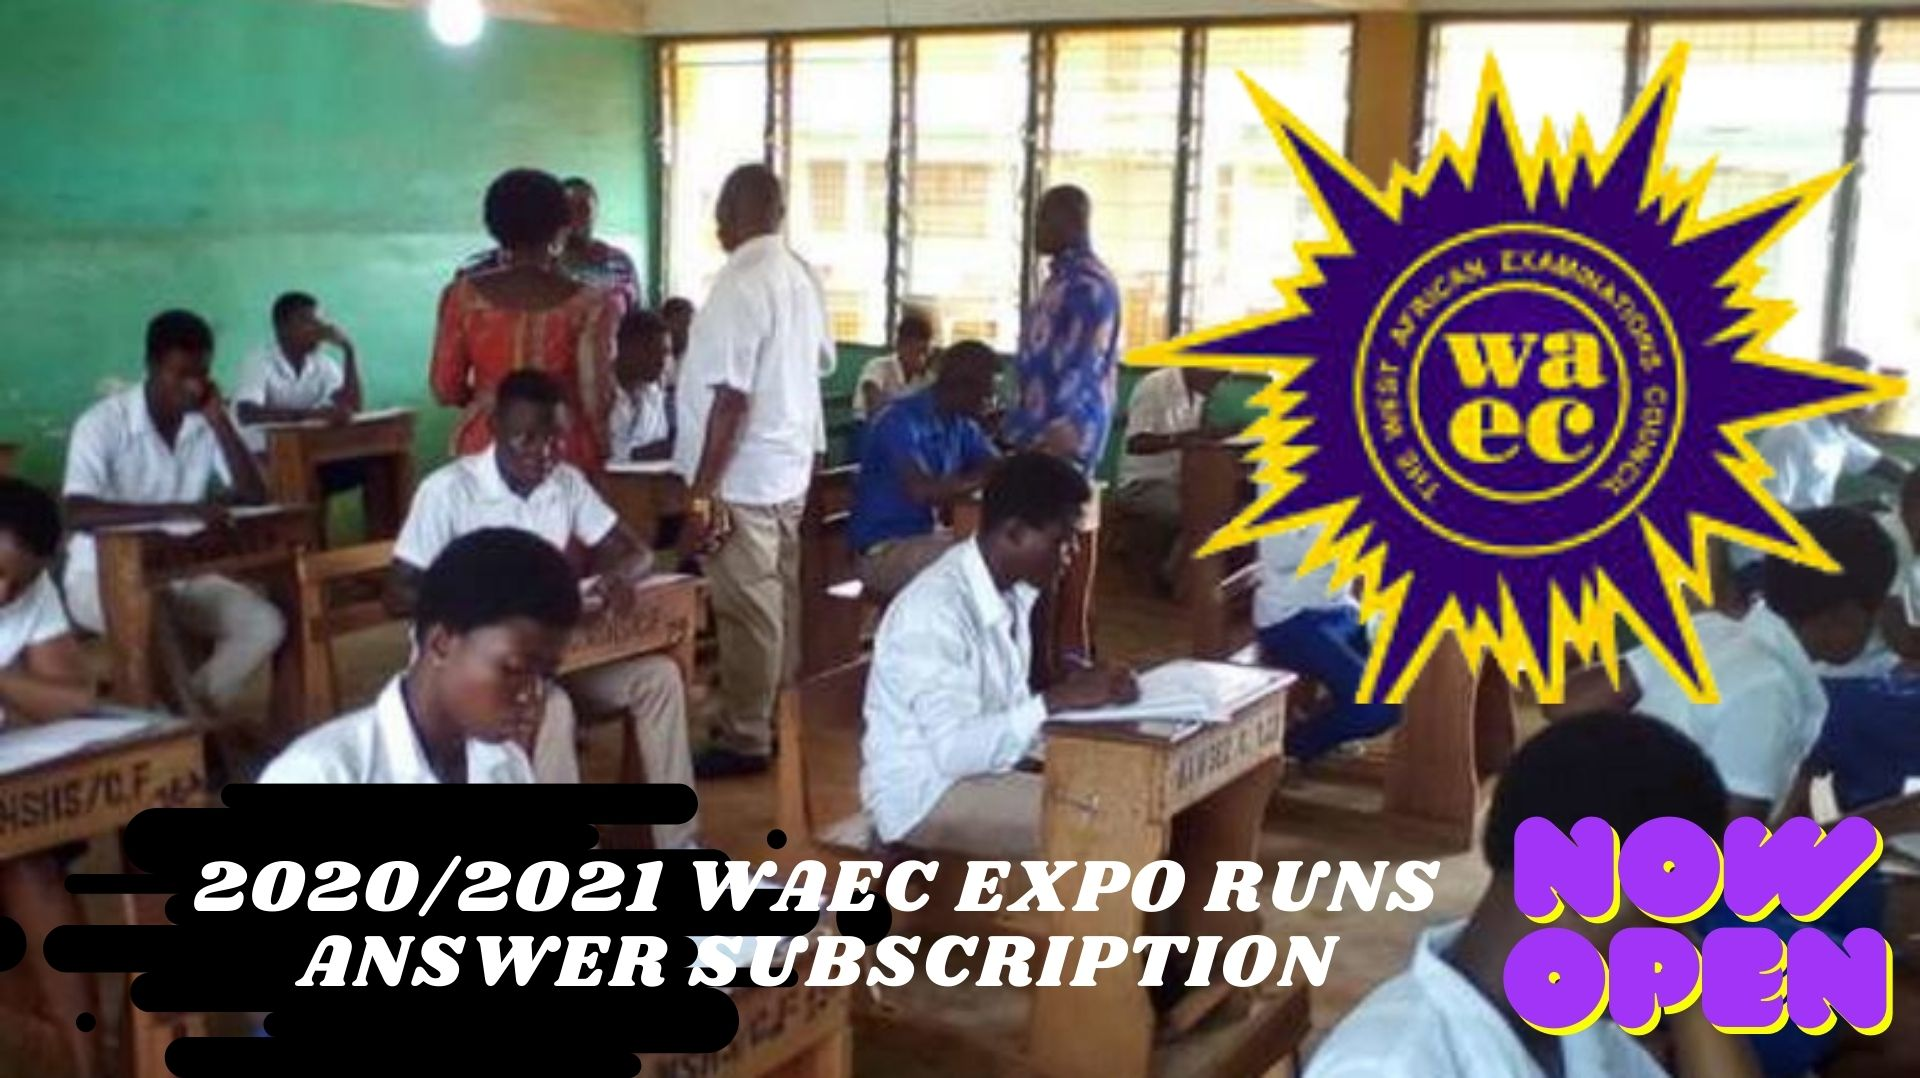 2020/2021 WAEC EXPO RUNS ANSWER SUBSCRIPTION